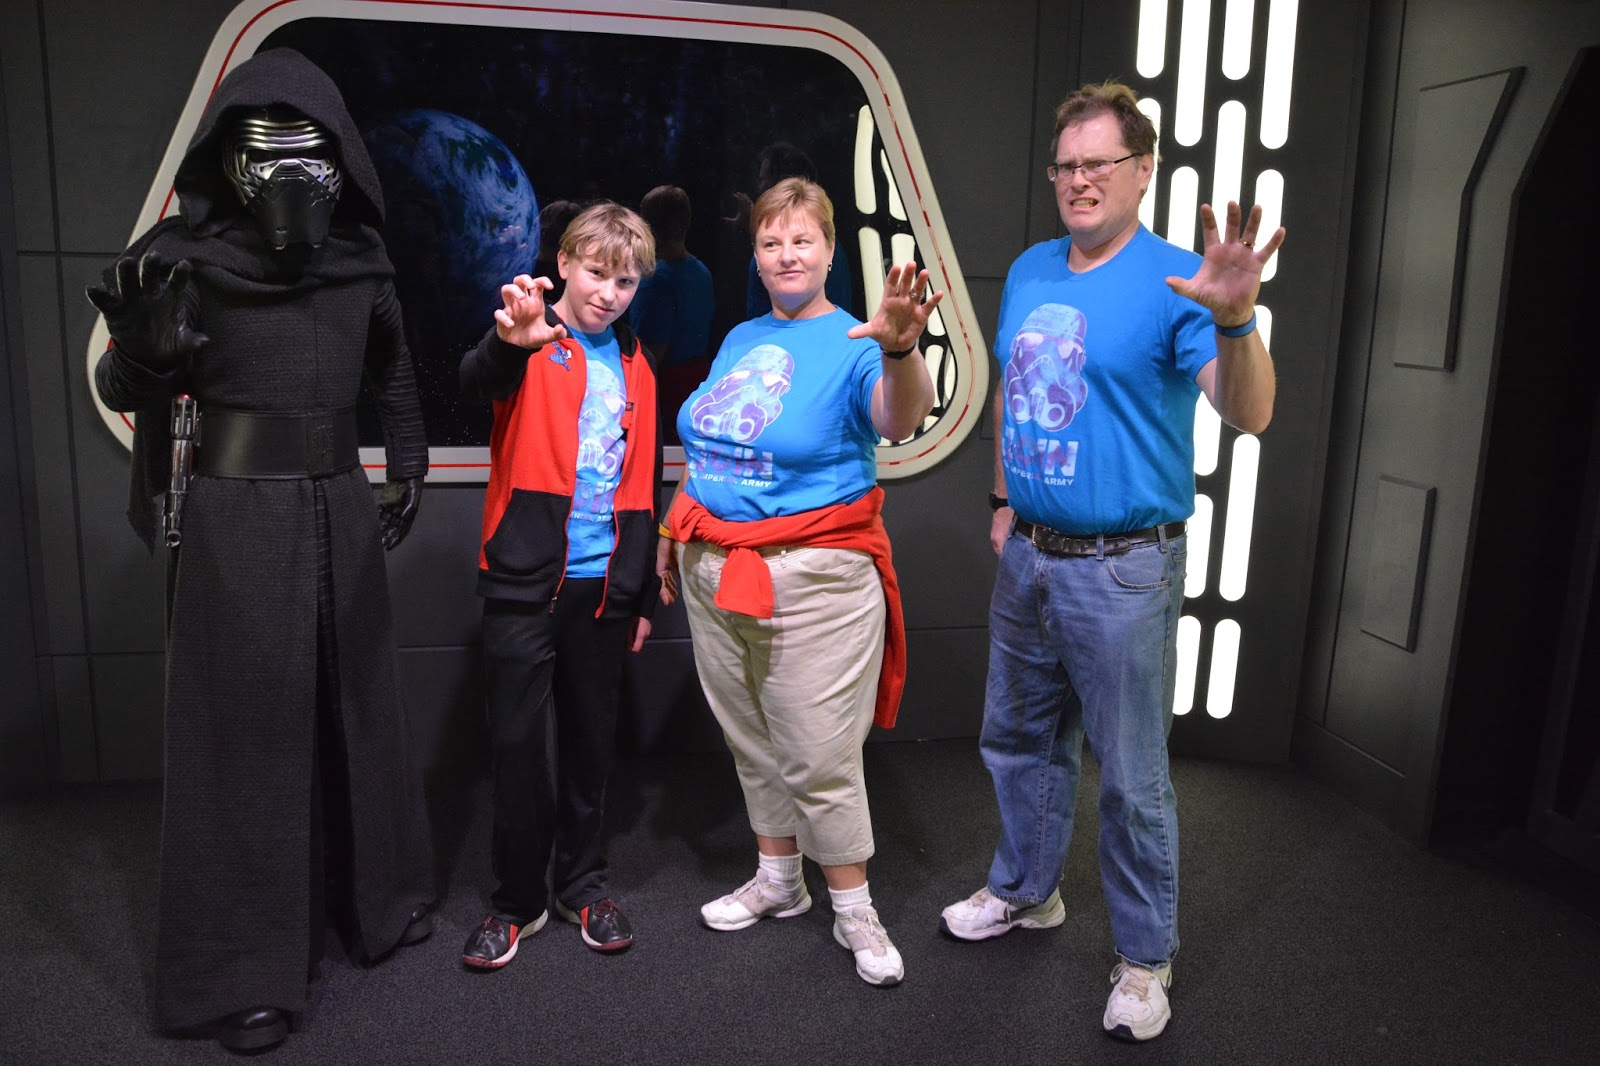 Williams family perks of traveling with a disney rewards visa two disneys hollywood studios is the park with the star wars meet and greet location offered 1100 am to 400 pm daily in the star wars launch bay m4hsunfo